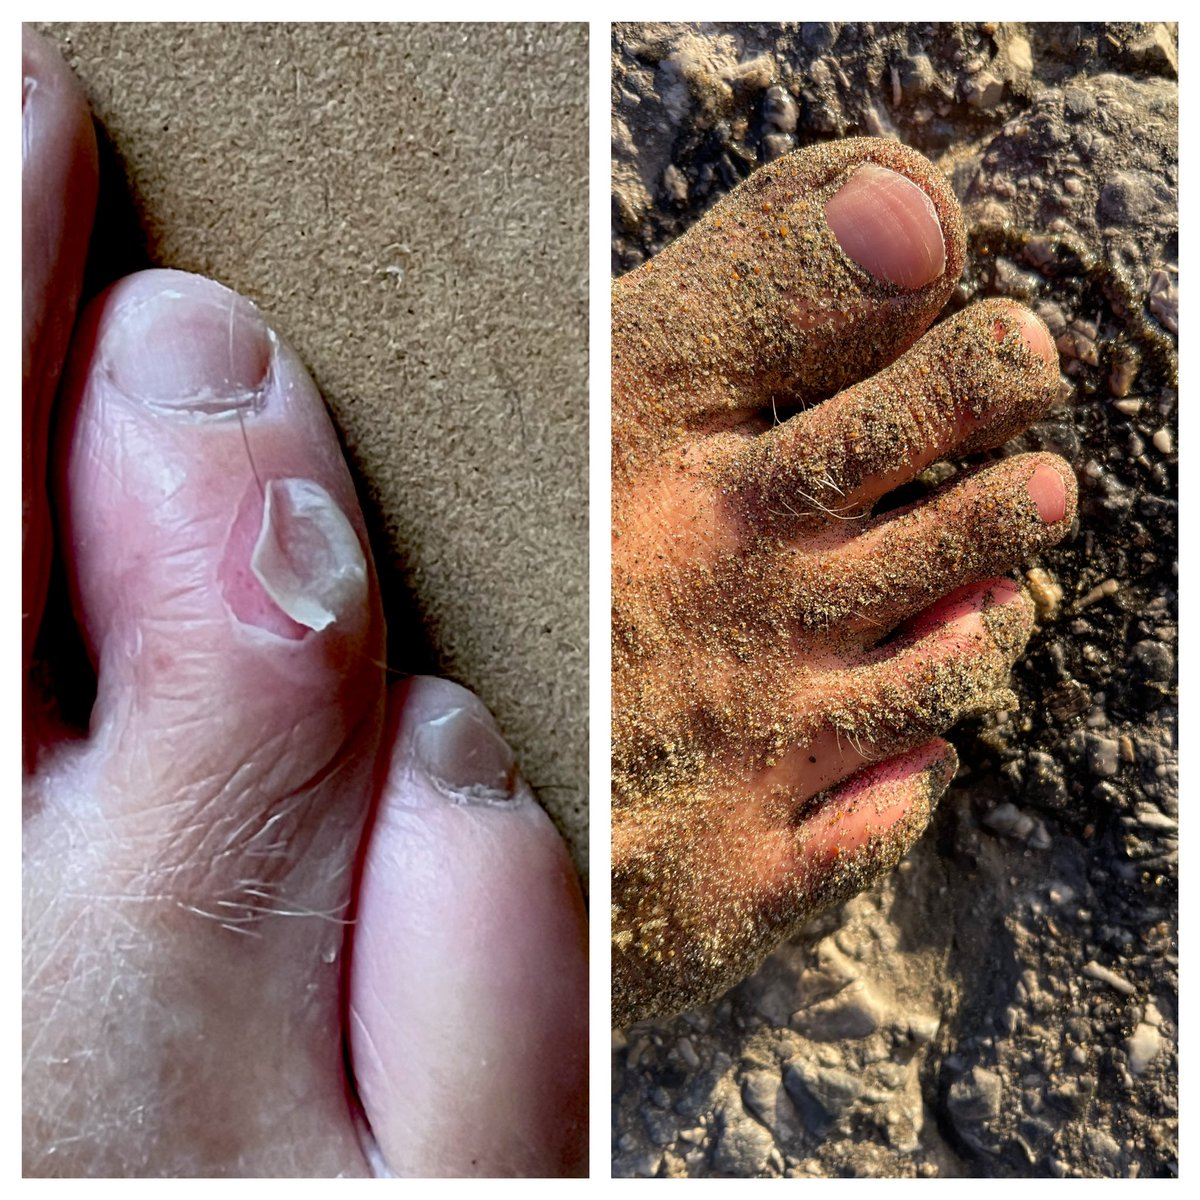 Only one thing worse than ripping a hole in your foot from kicking too hard with fins on....filling it up with salt and sand <3  #nopainnogain #ouch #surf #sail #sand #salt